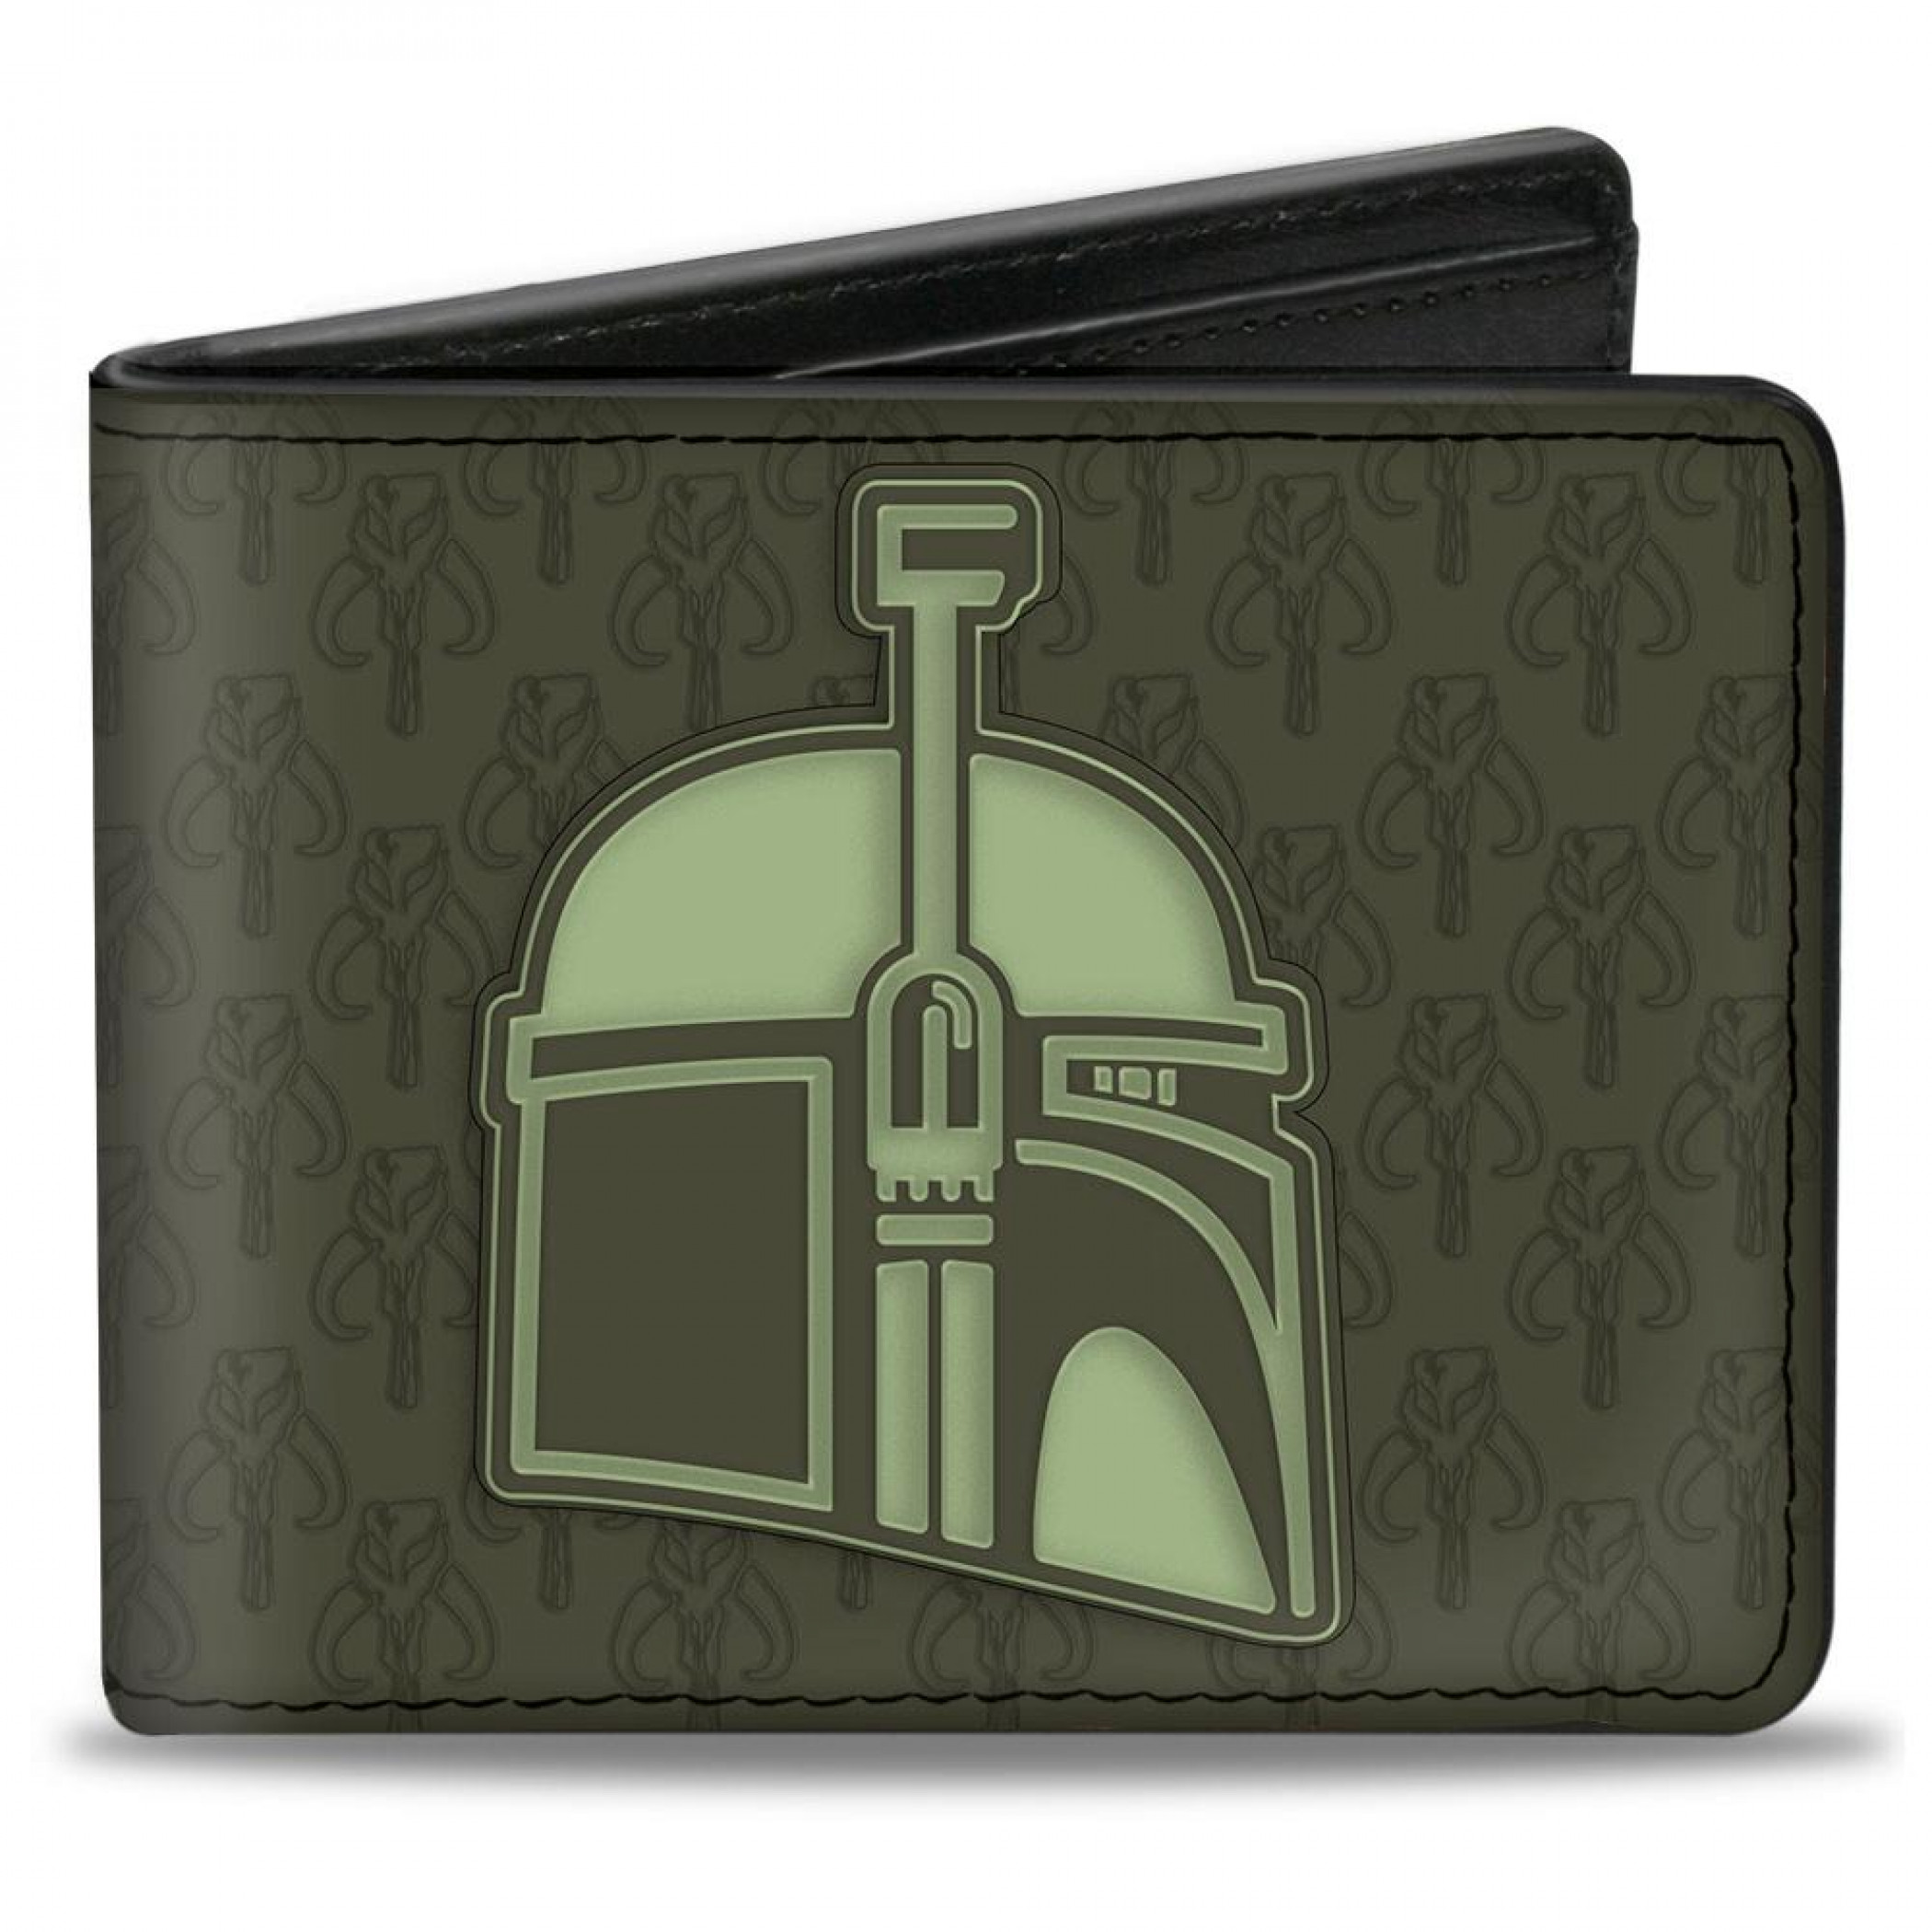 The Mandalorian Helmet Vegan Leather Wallet